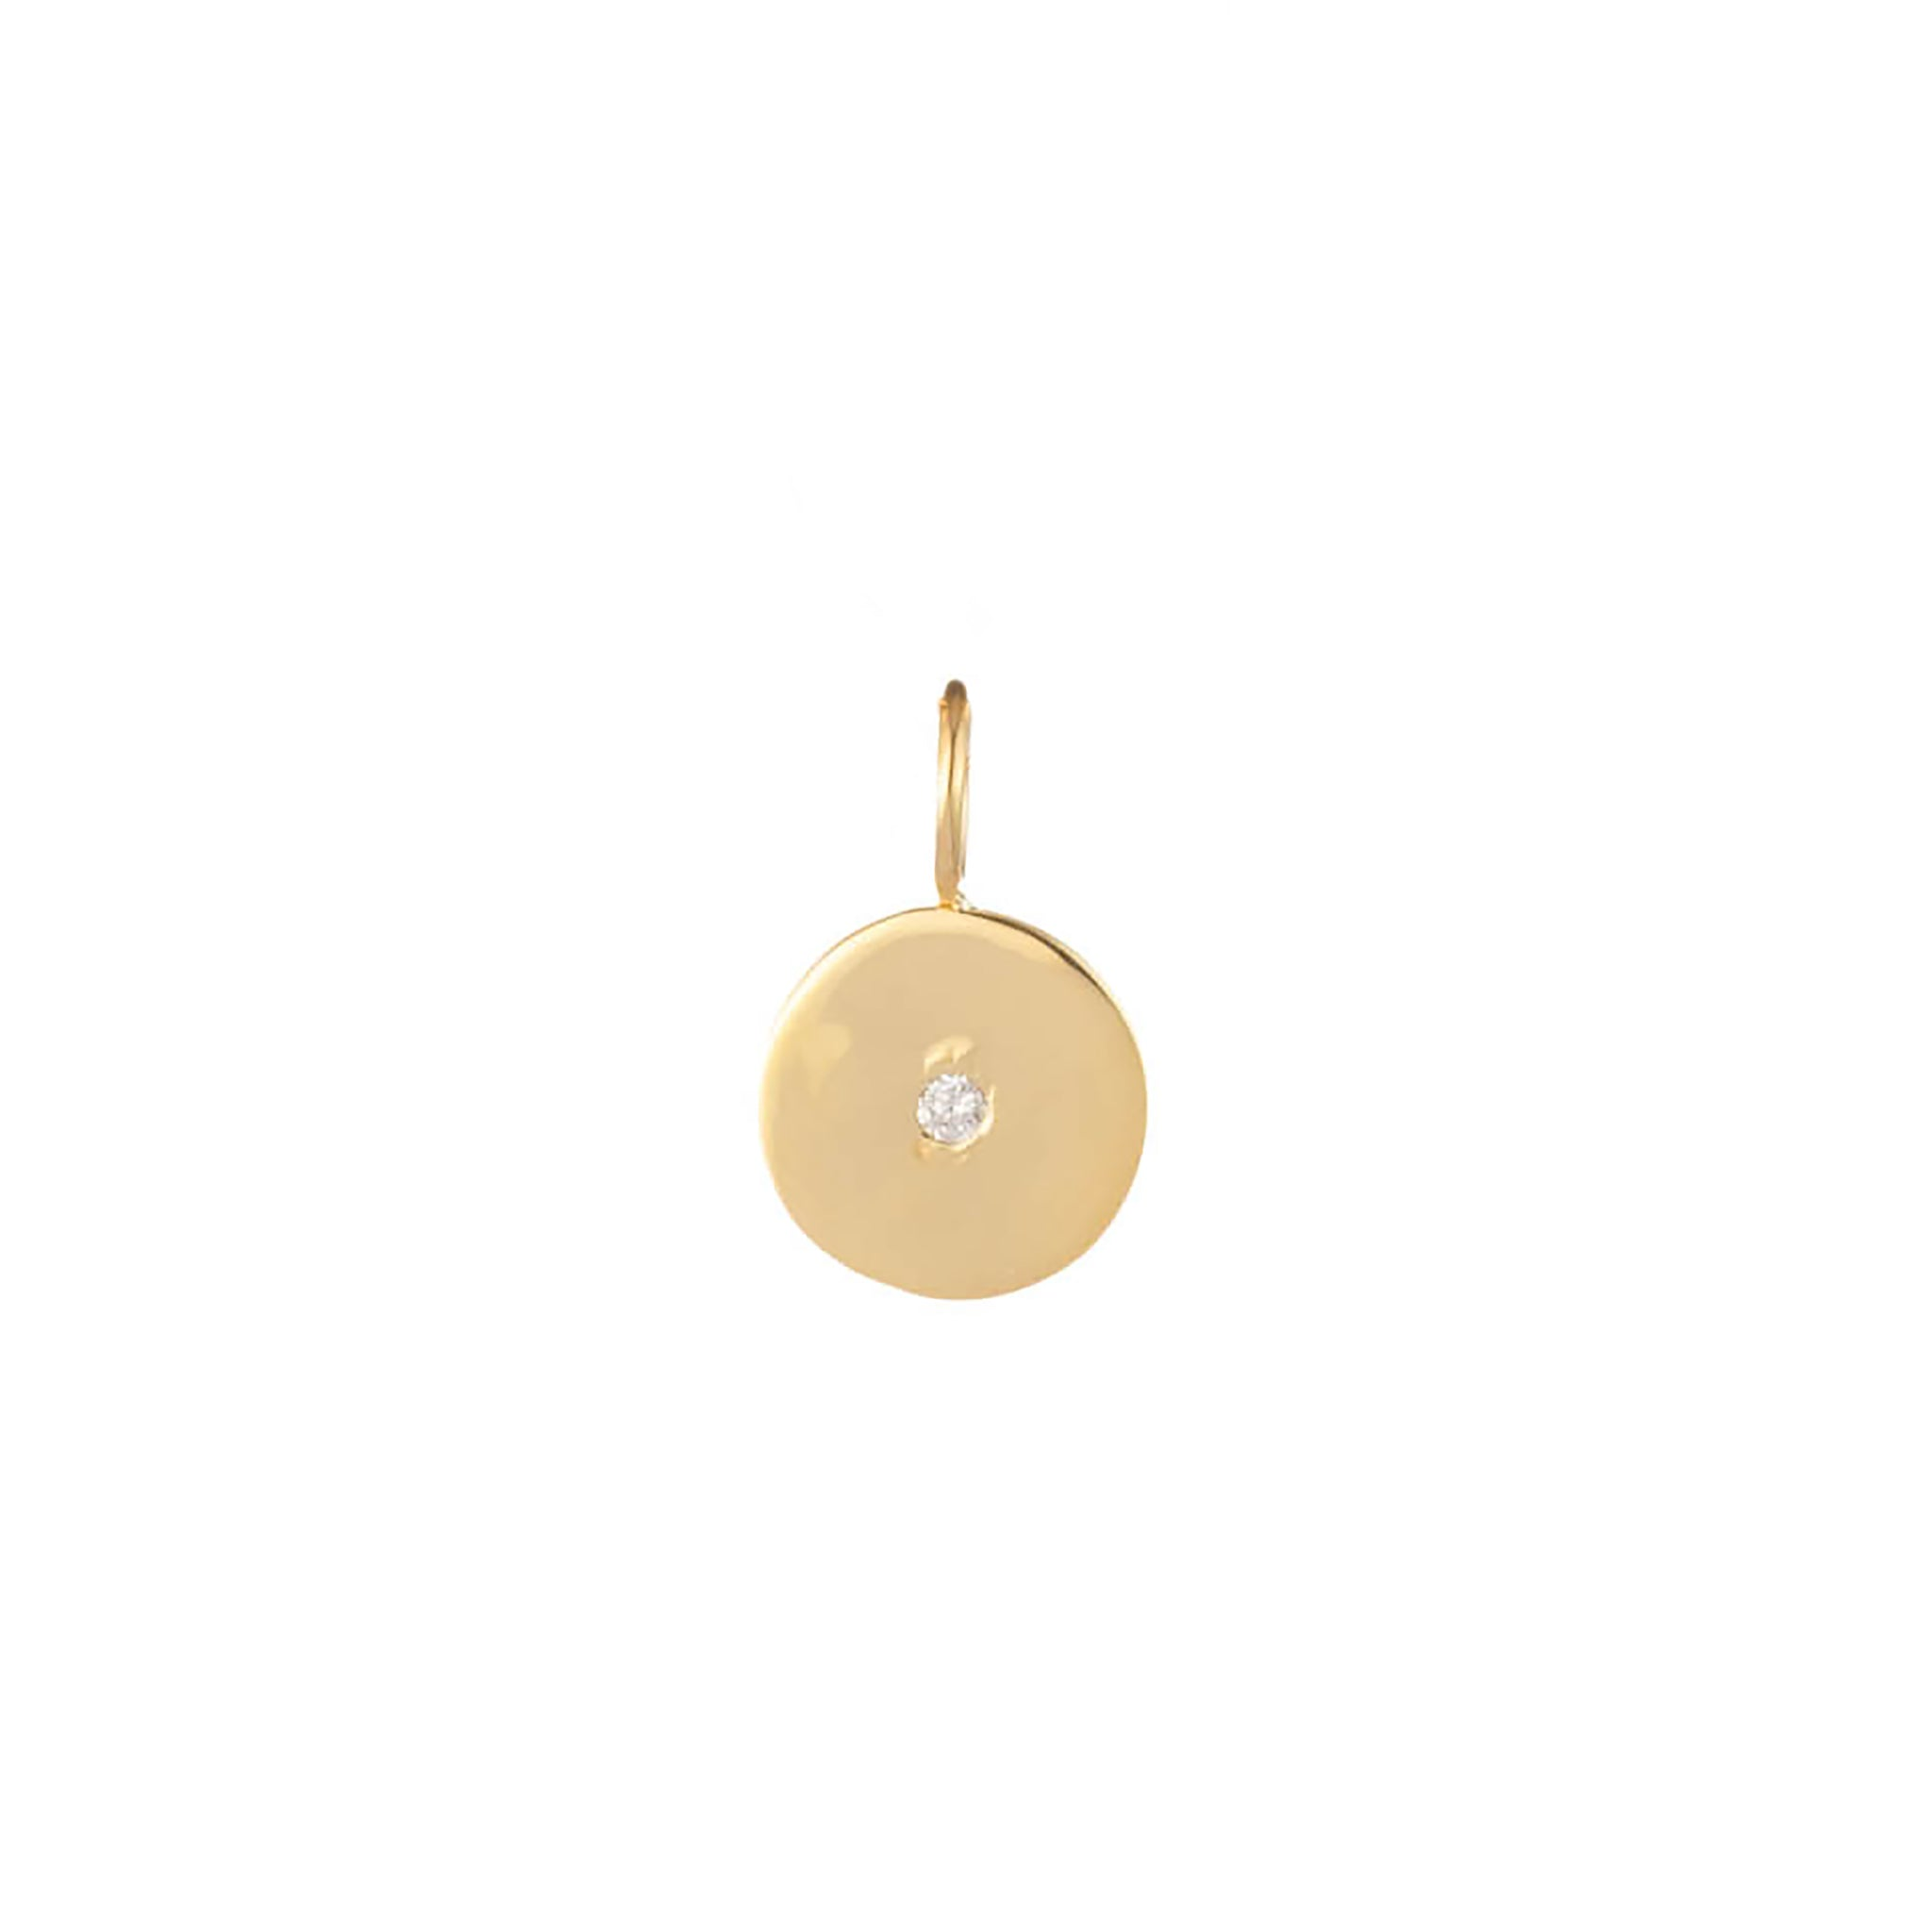 gold diamond charm similar to wwake fine delicate charms for layering